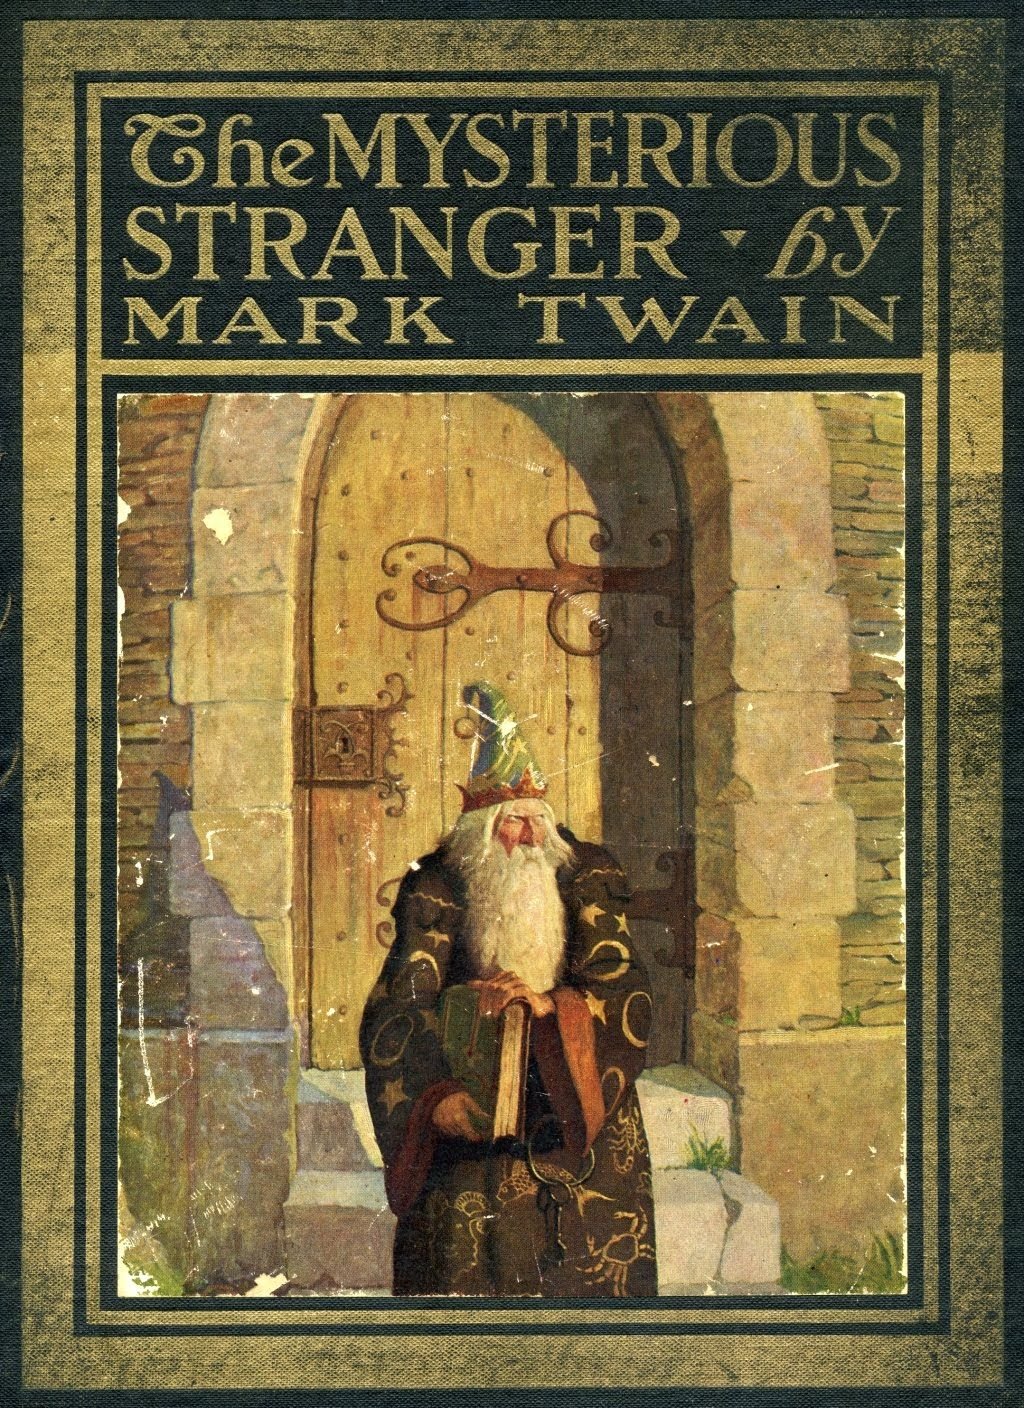 The Mysterious Stranger Mark Twain Illustrator NC Wyeth Harper Brothers 1916 Posthumously First Edition Original Dust Jacket